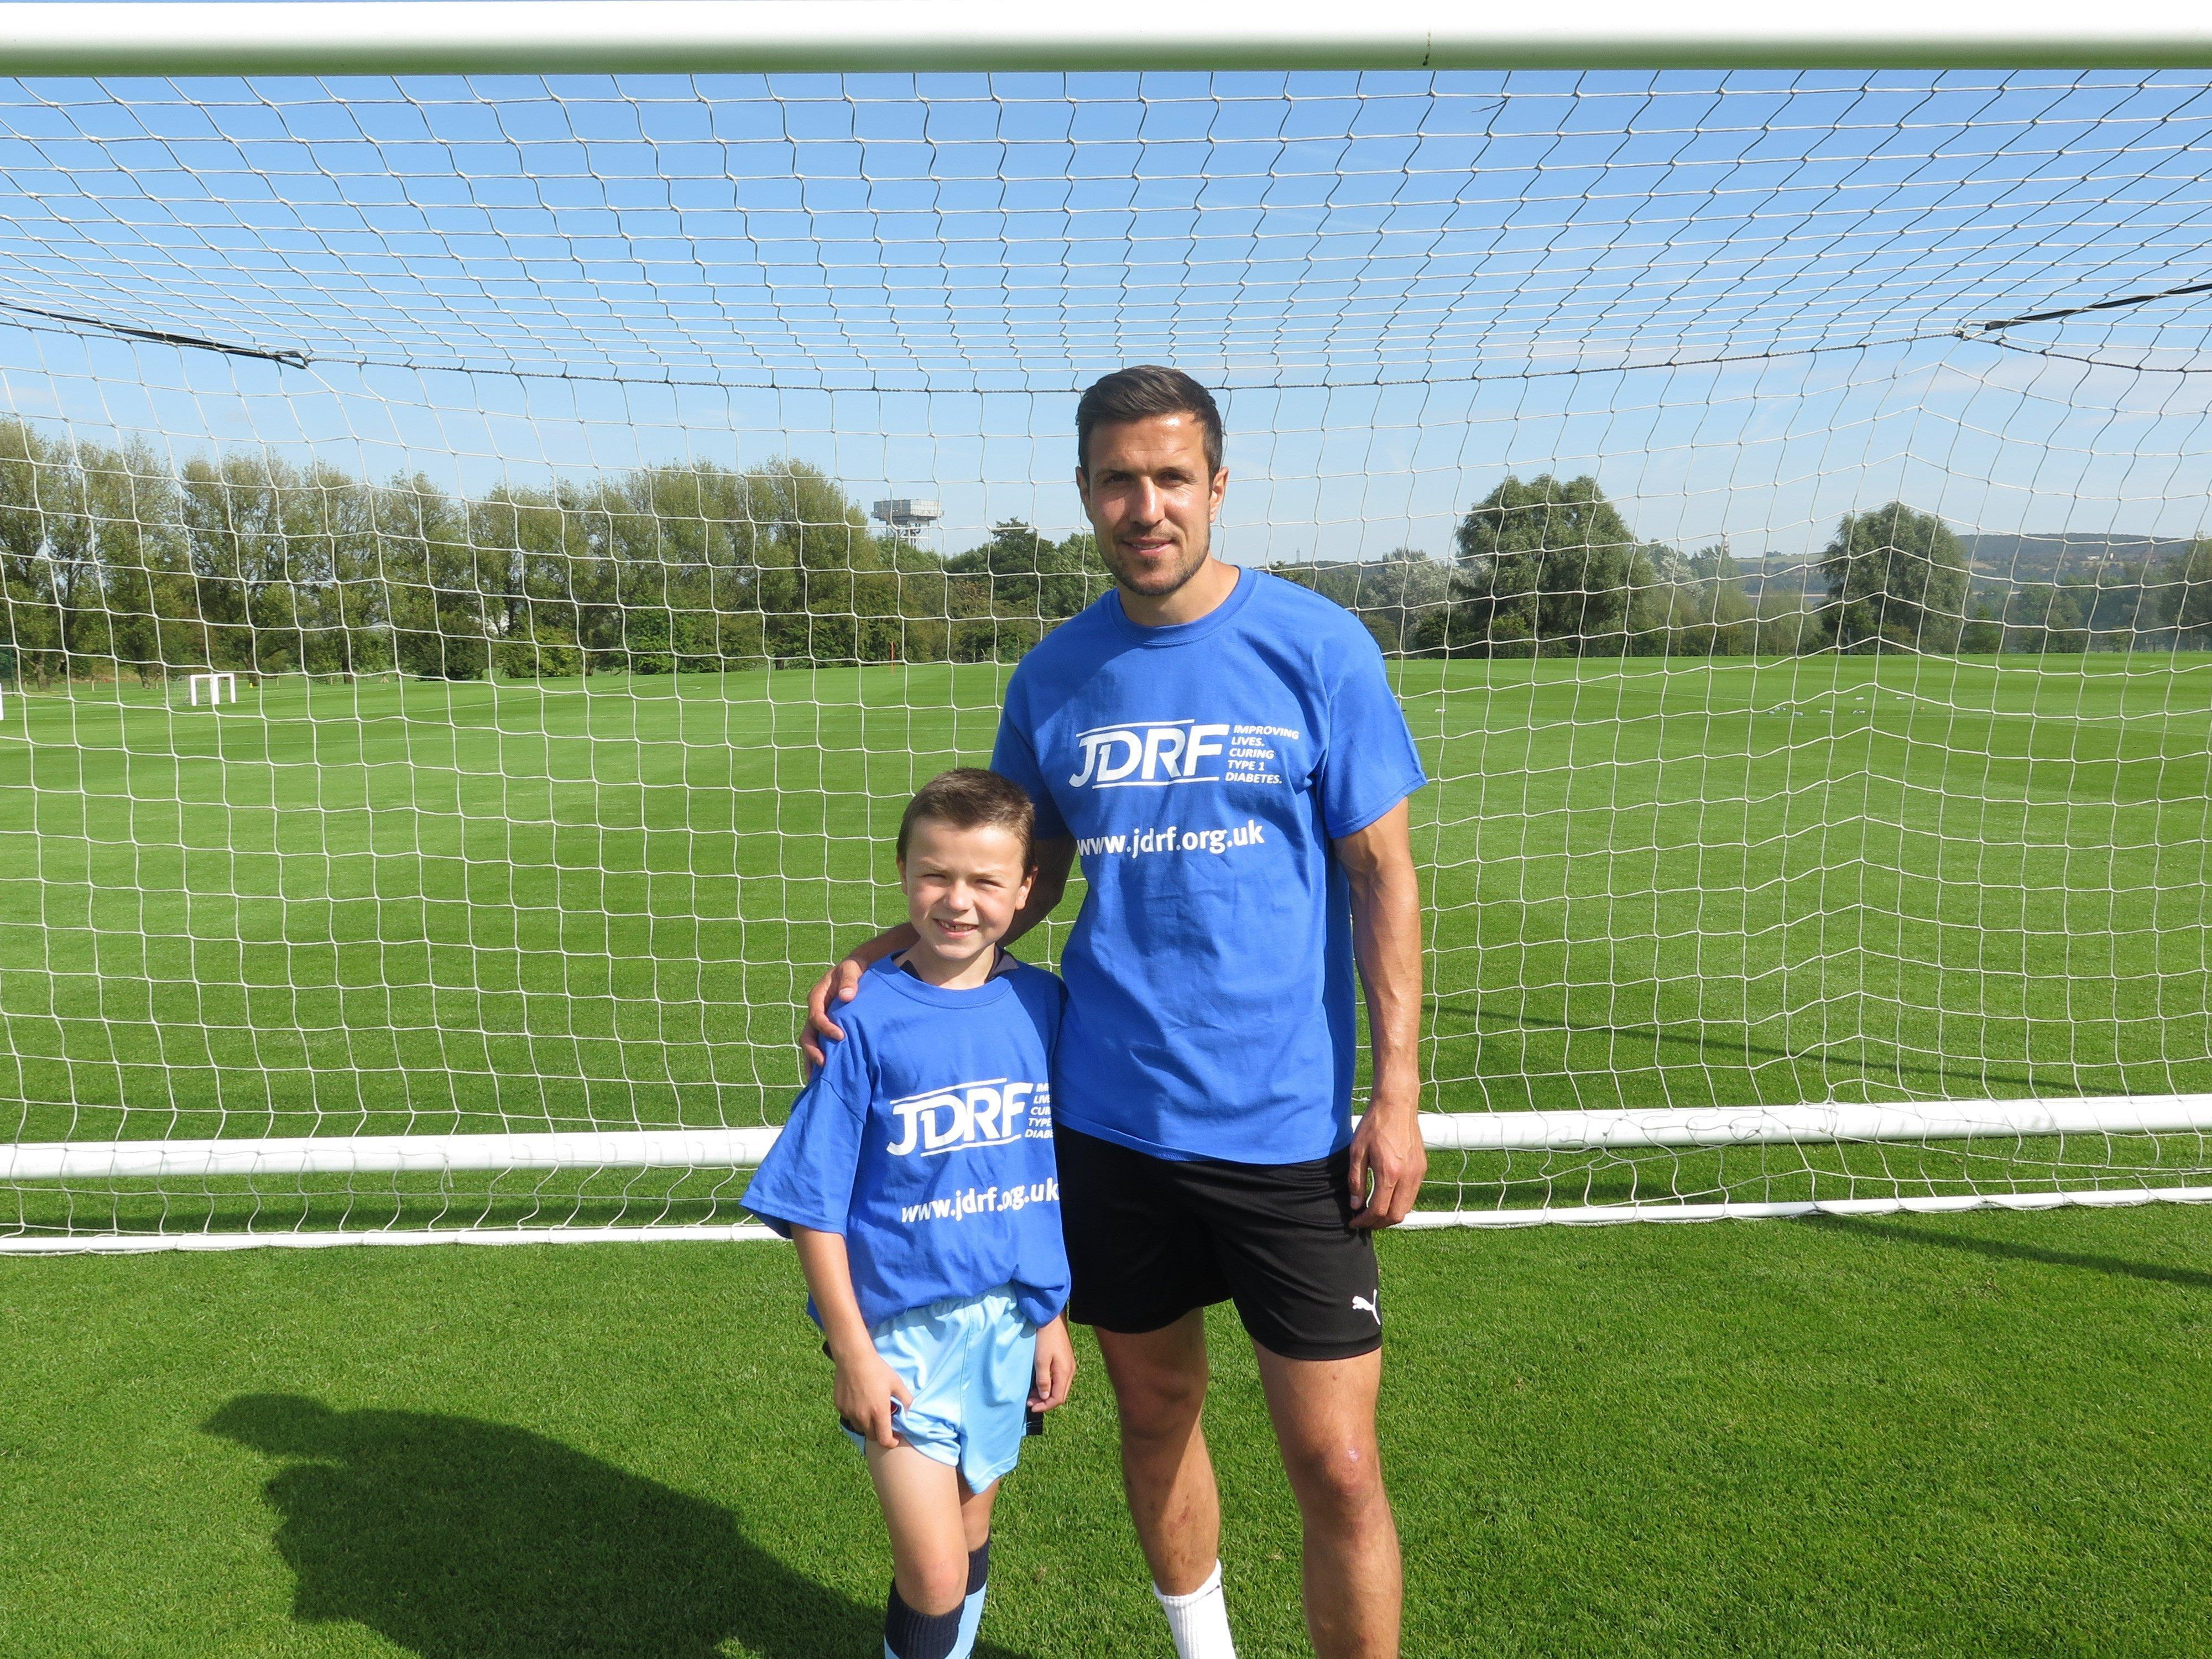 Championship Footballer And Father To A Child With Type 1 Diabetes Richard Wood Speaks To Jdrf